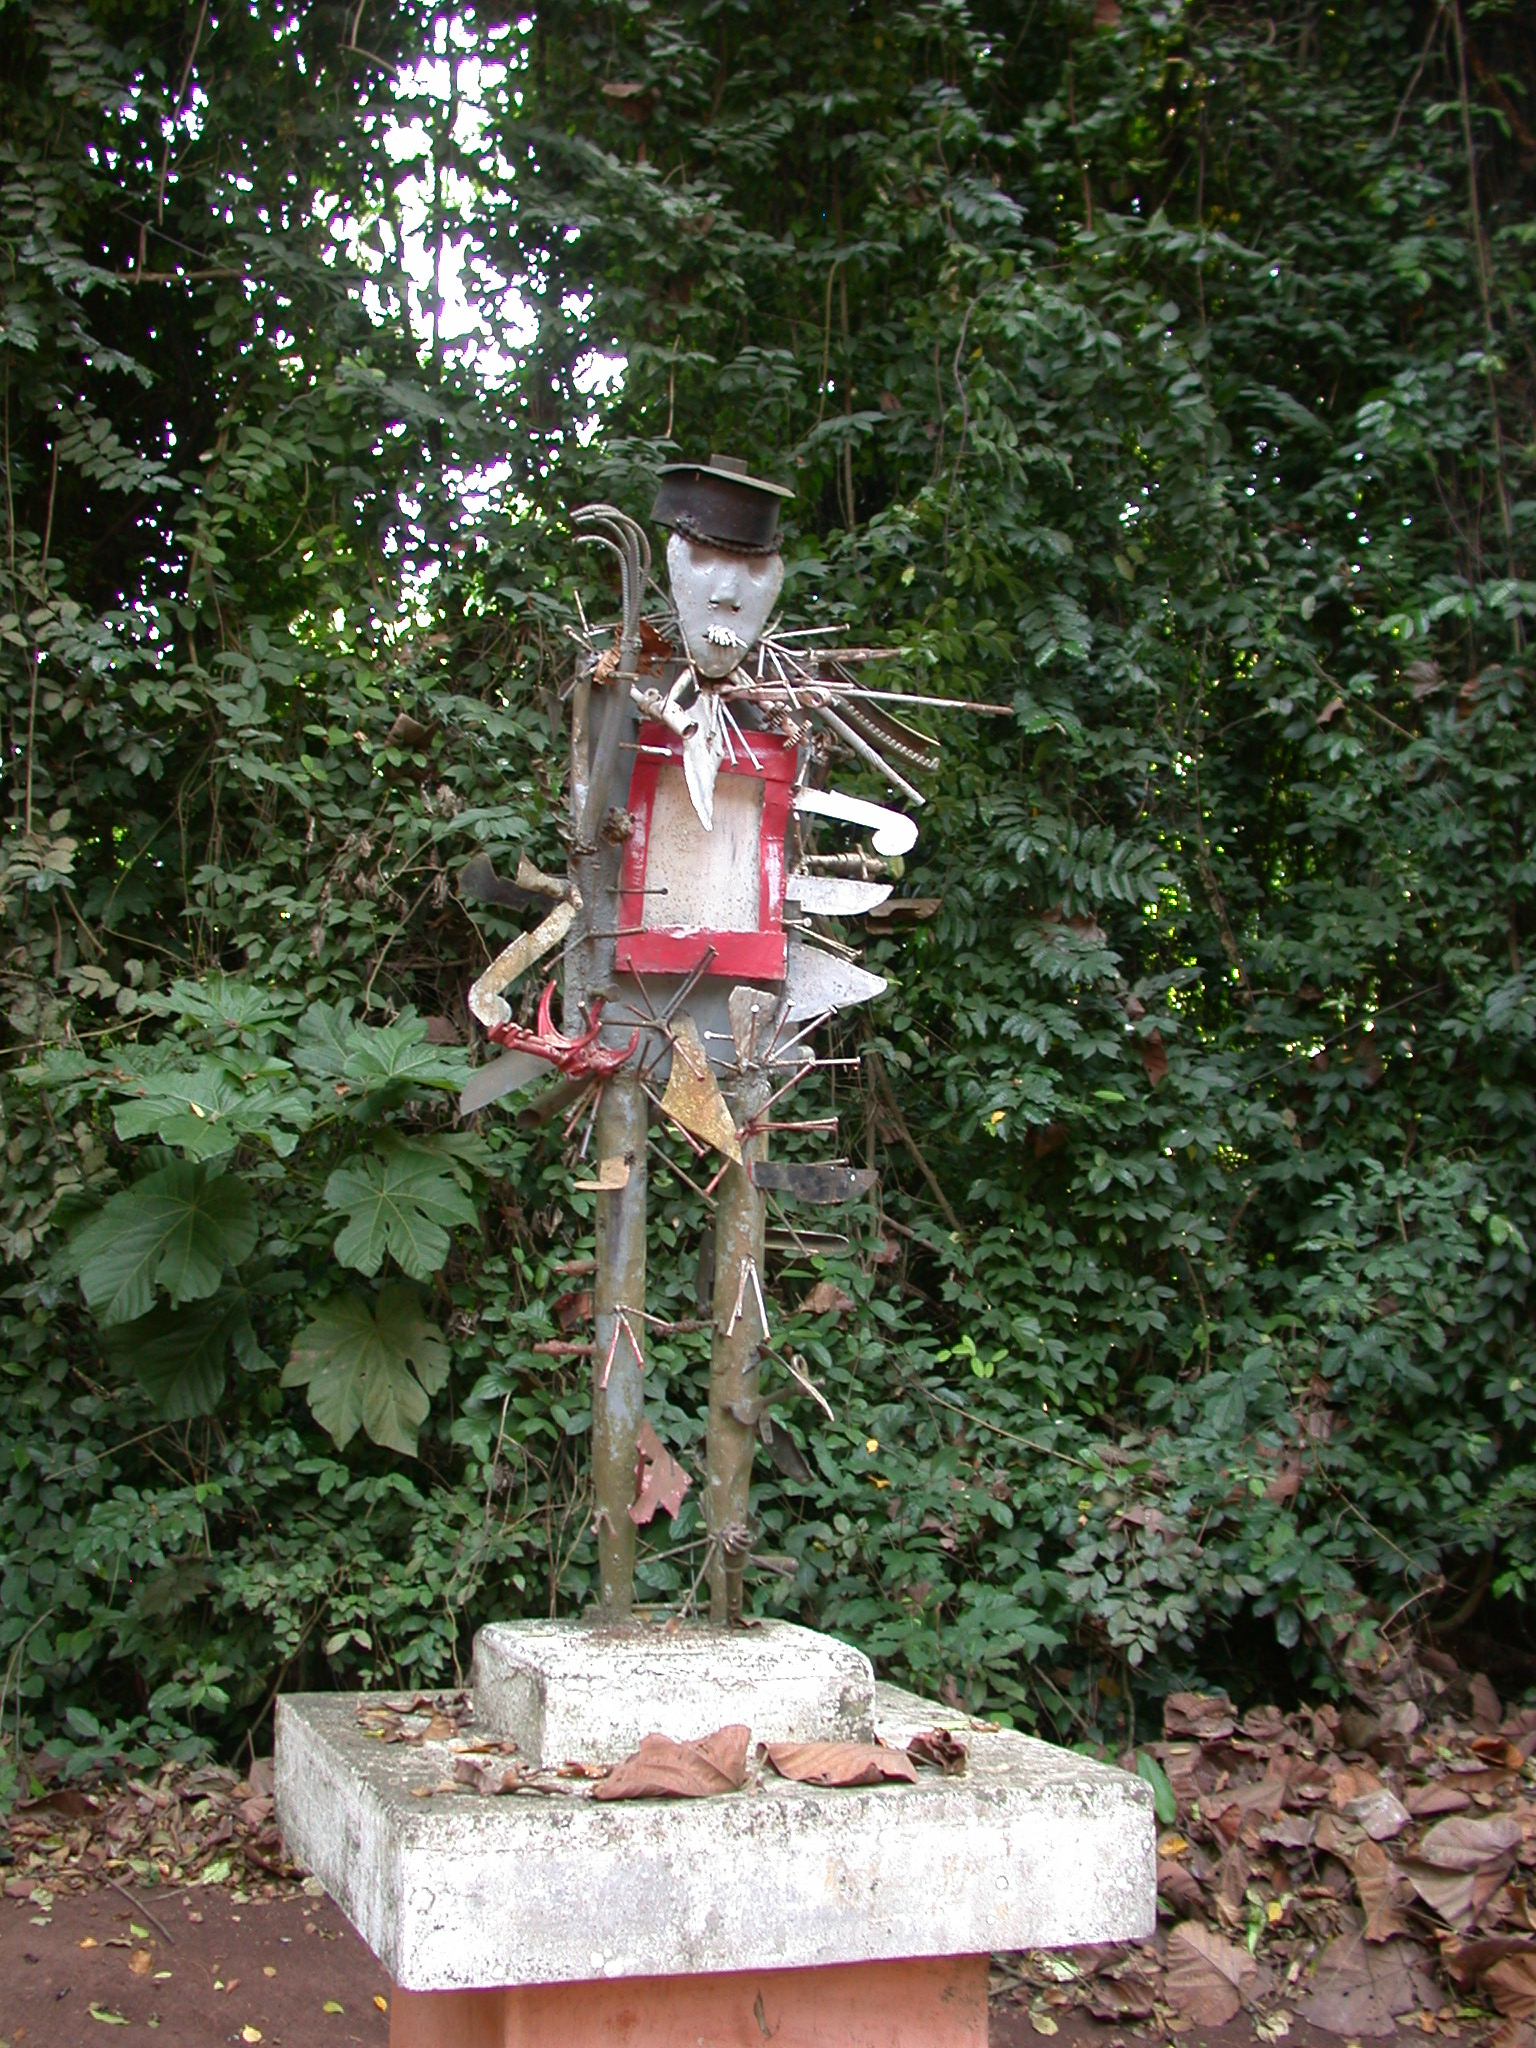 Sculpture Personifying Vodun Force Called Cakatu, Kpasse Sacred Forest, Ouidah, Benin